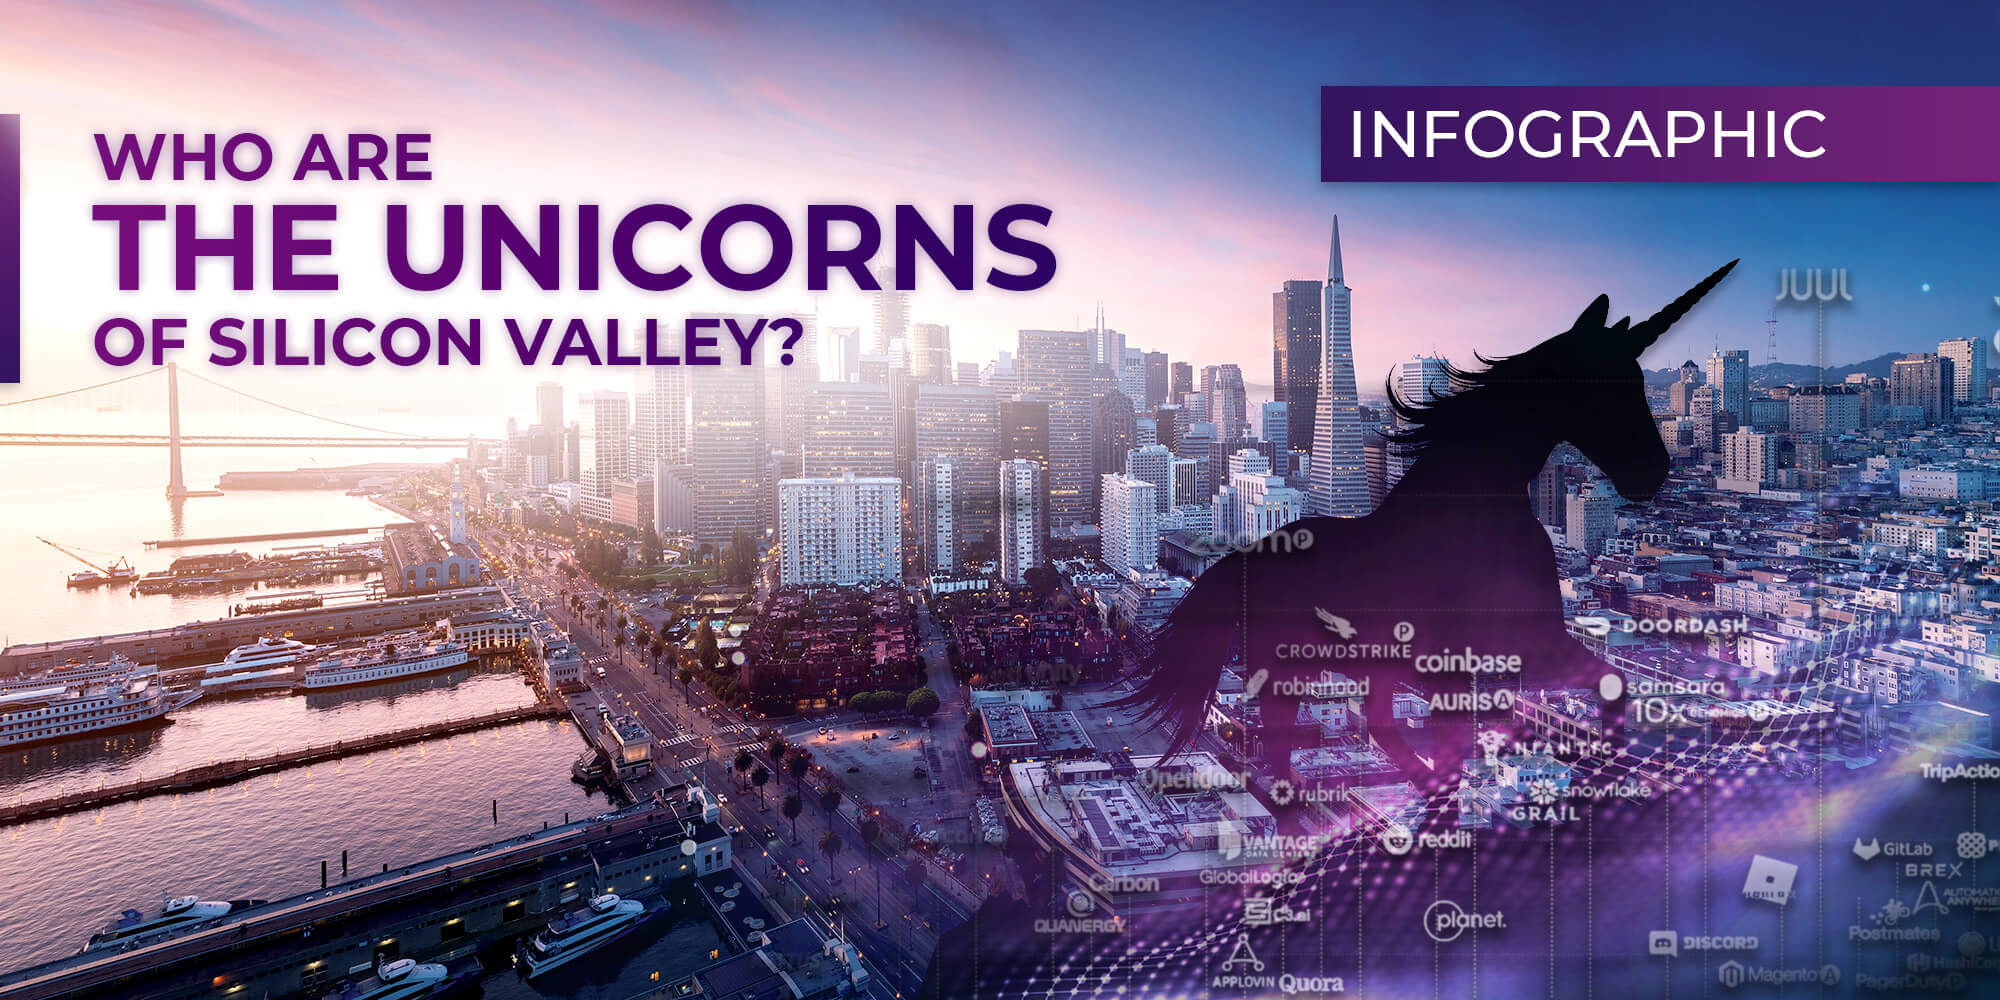 Infographic: Who are the Unicorns of Silicon Valley?